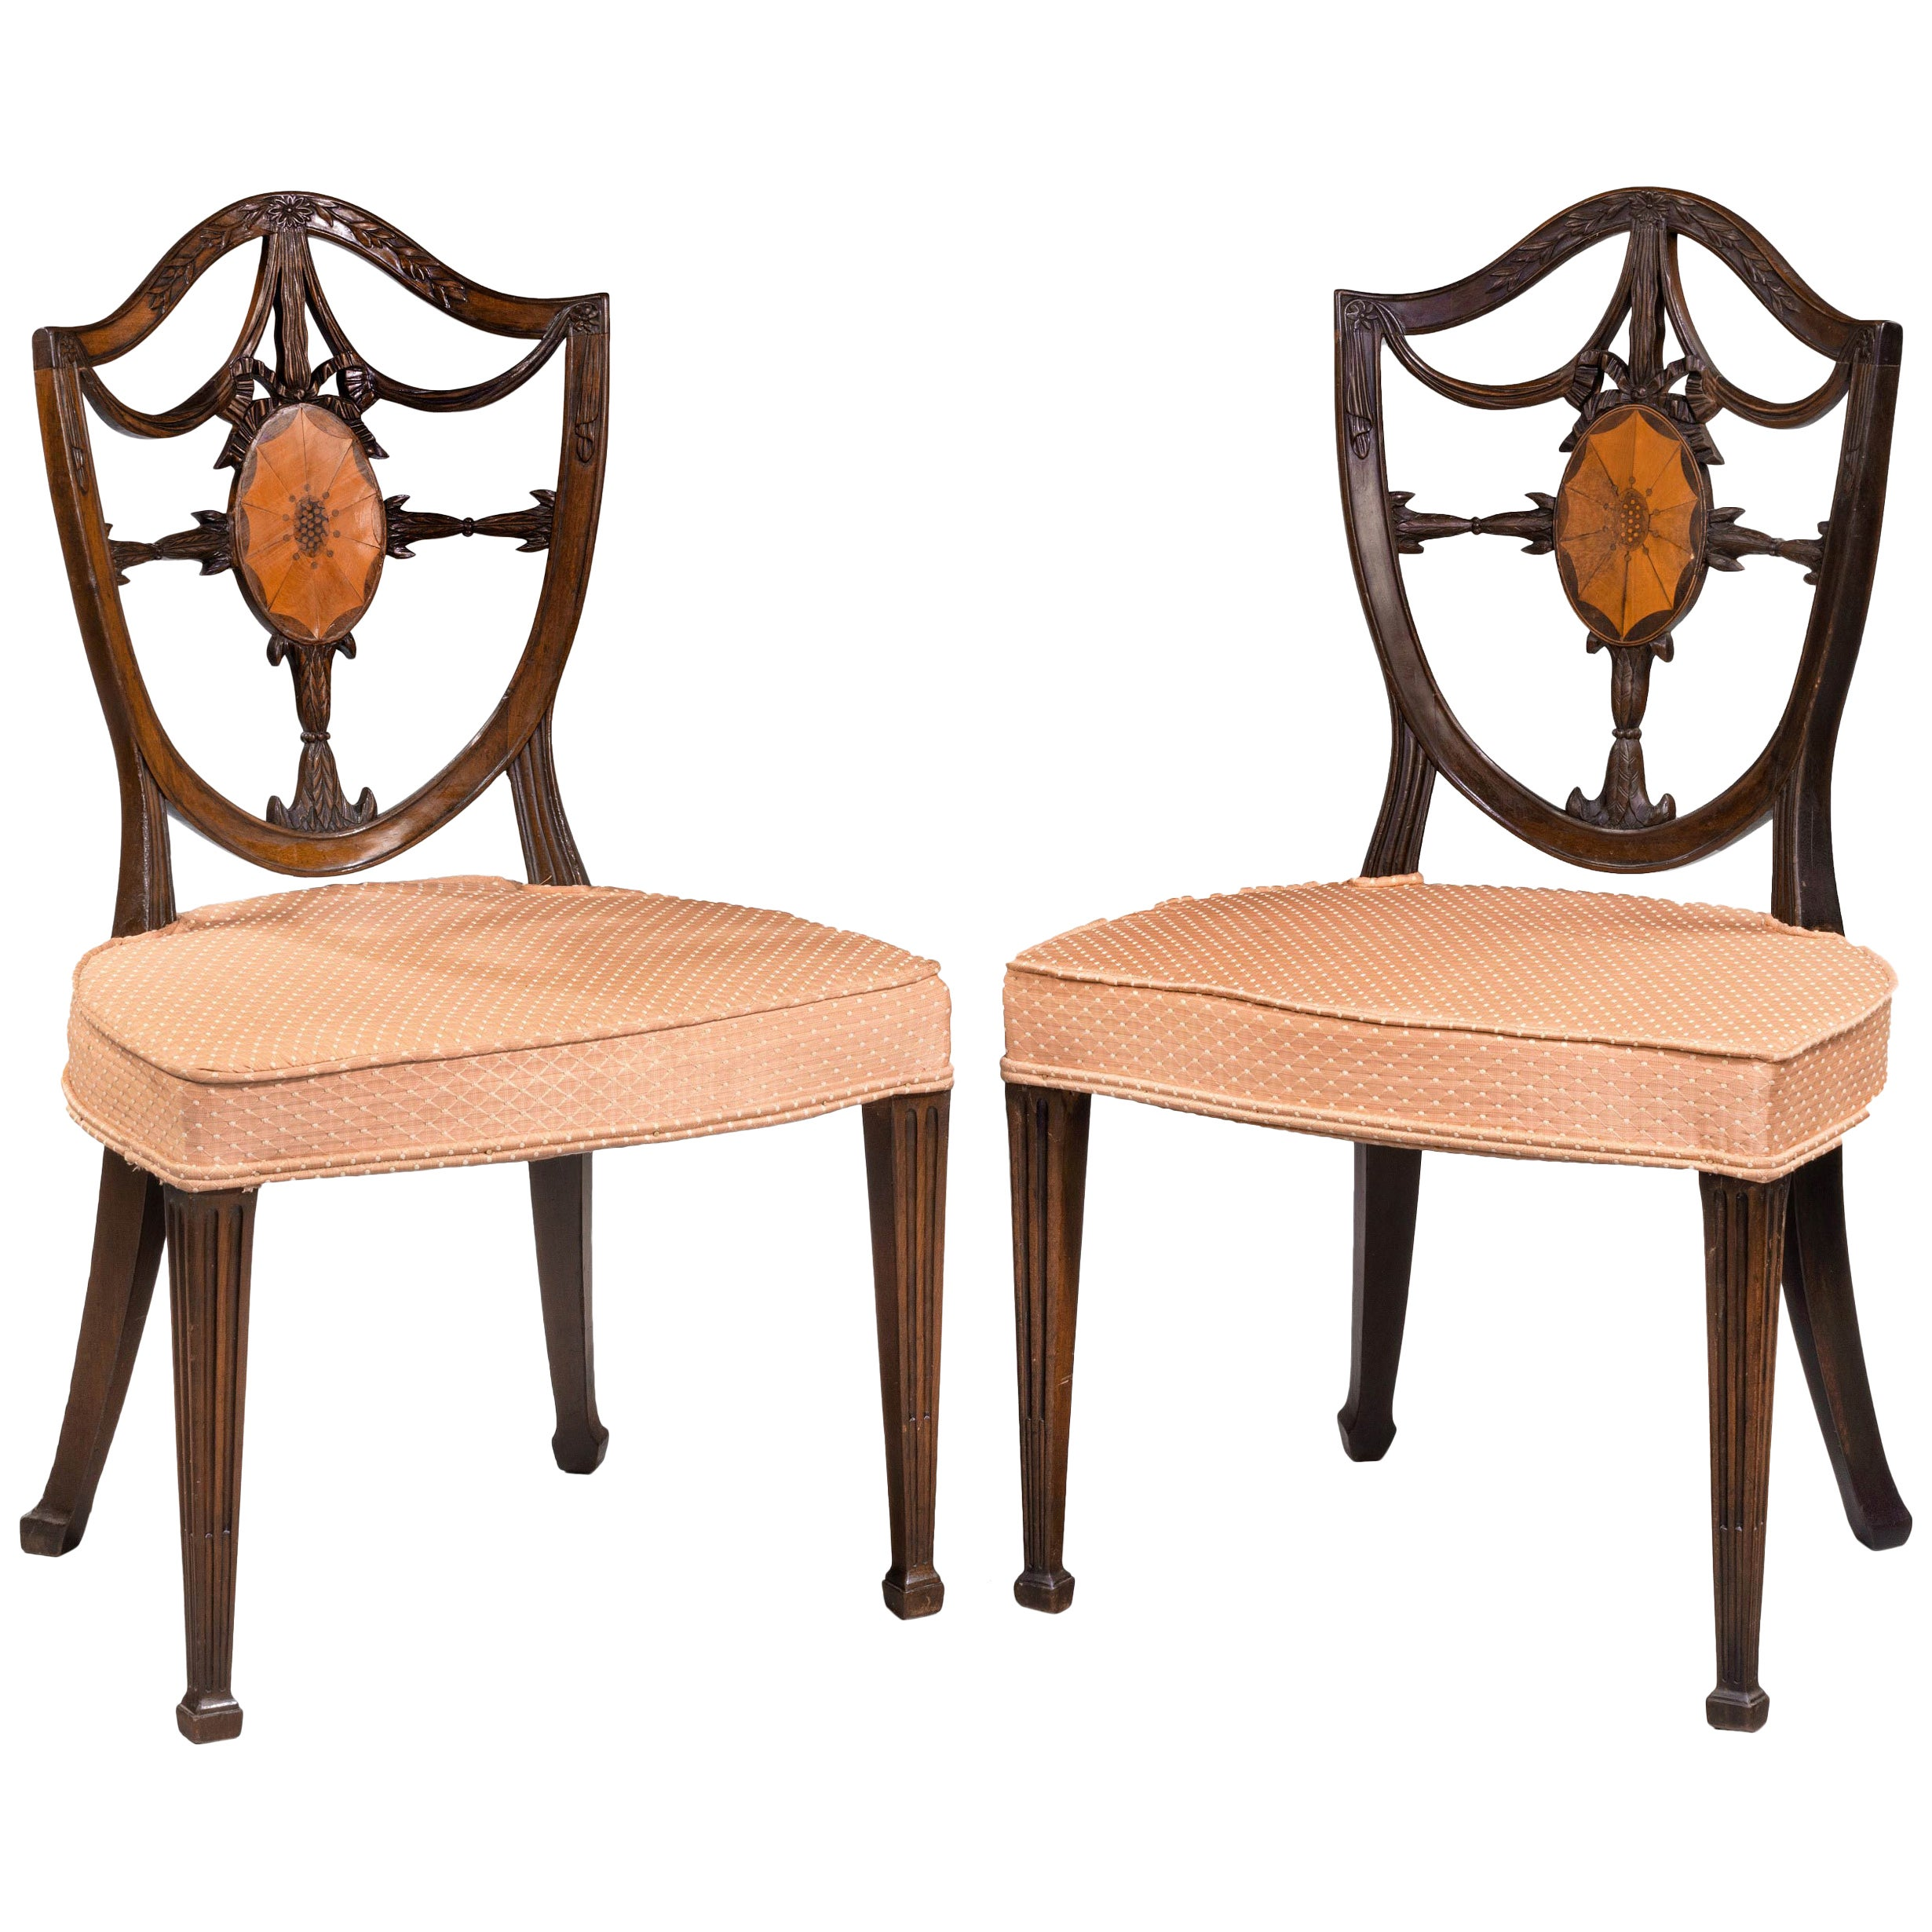 A Finely Carved Pair of Late George III Period Mahogany Hepplewhite Chairs For Sale at 1stdibs  sc 1 st  1stDibs & A Finely Carved Pair of Late George III Period Mahogany Hepplewhite ...